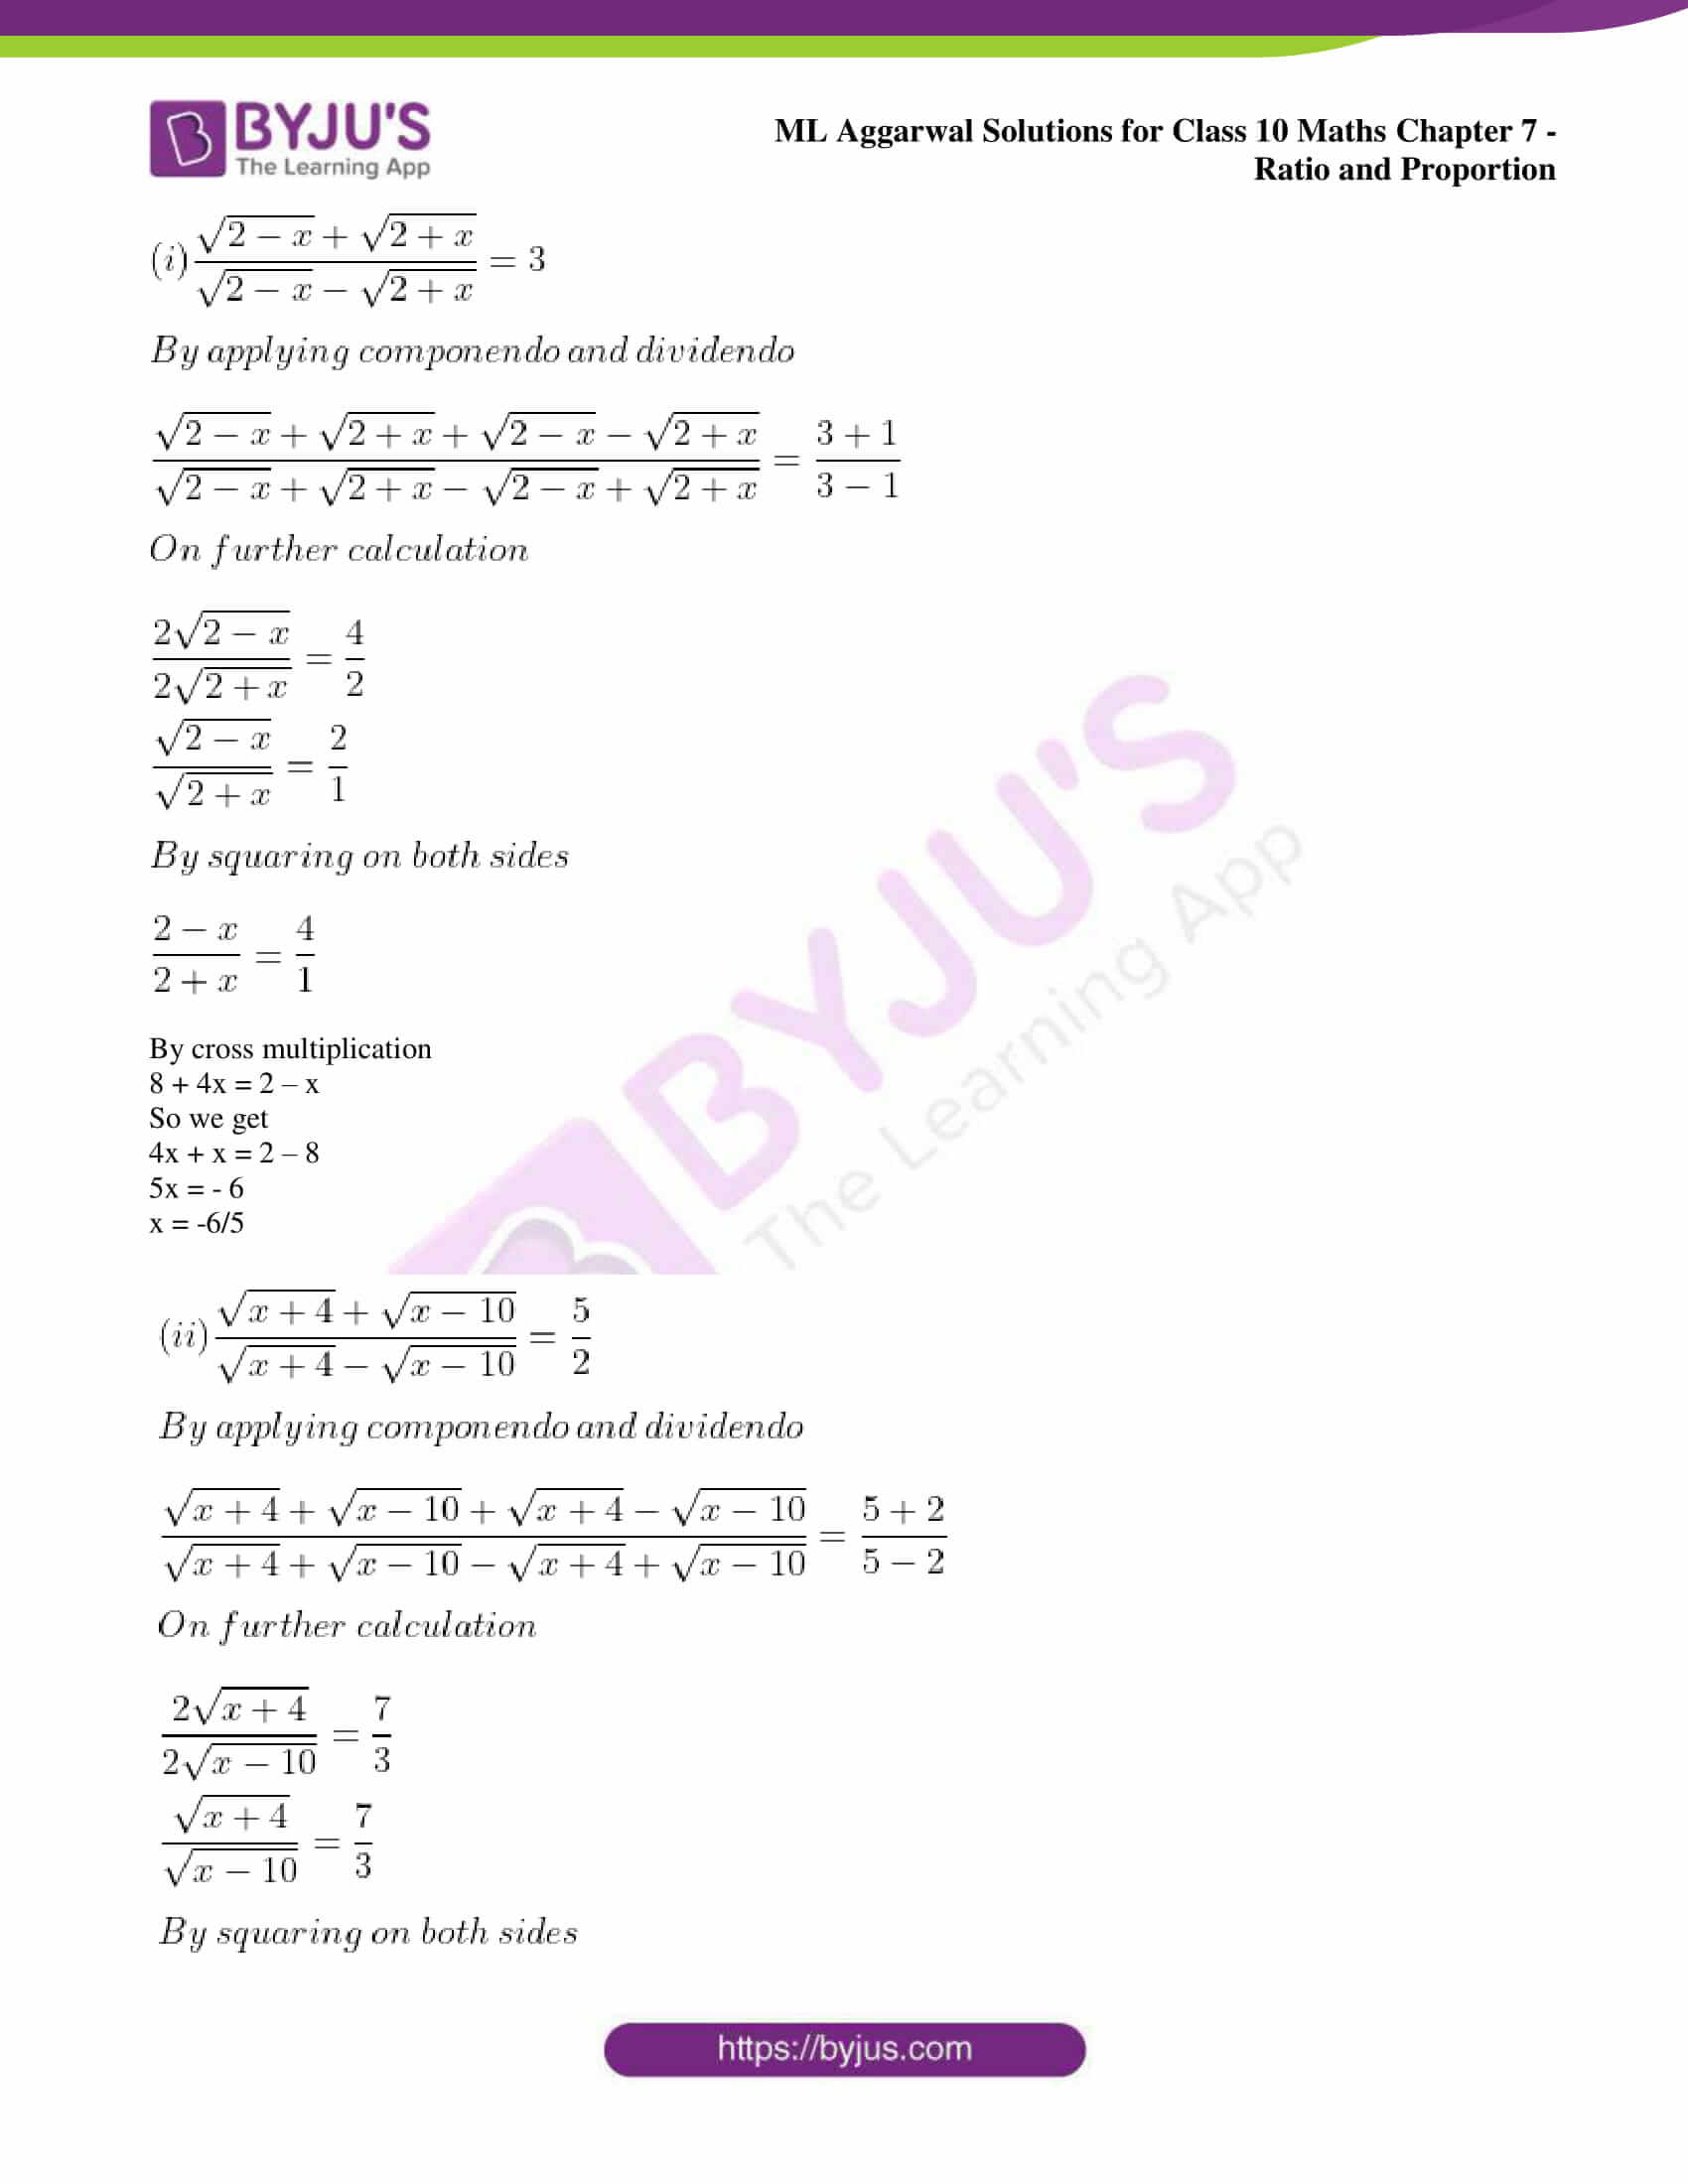 ml aggarwal solutions for class 10 maths chapter 7 55